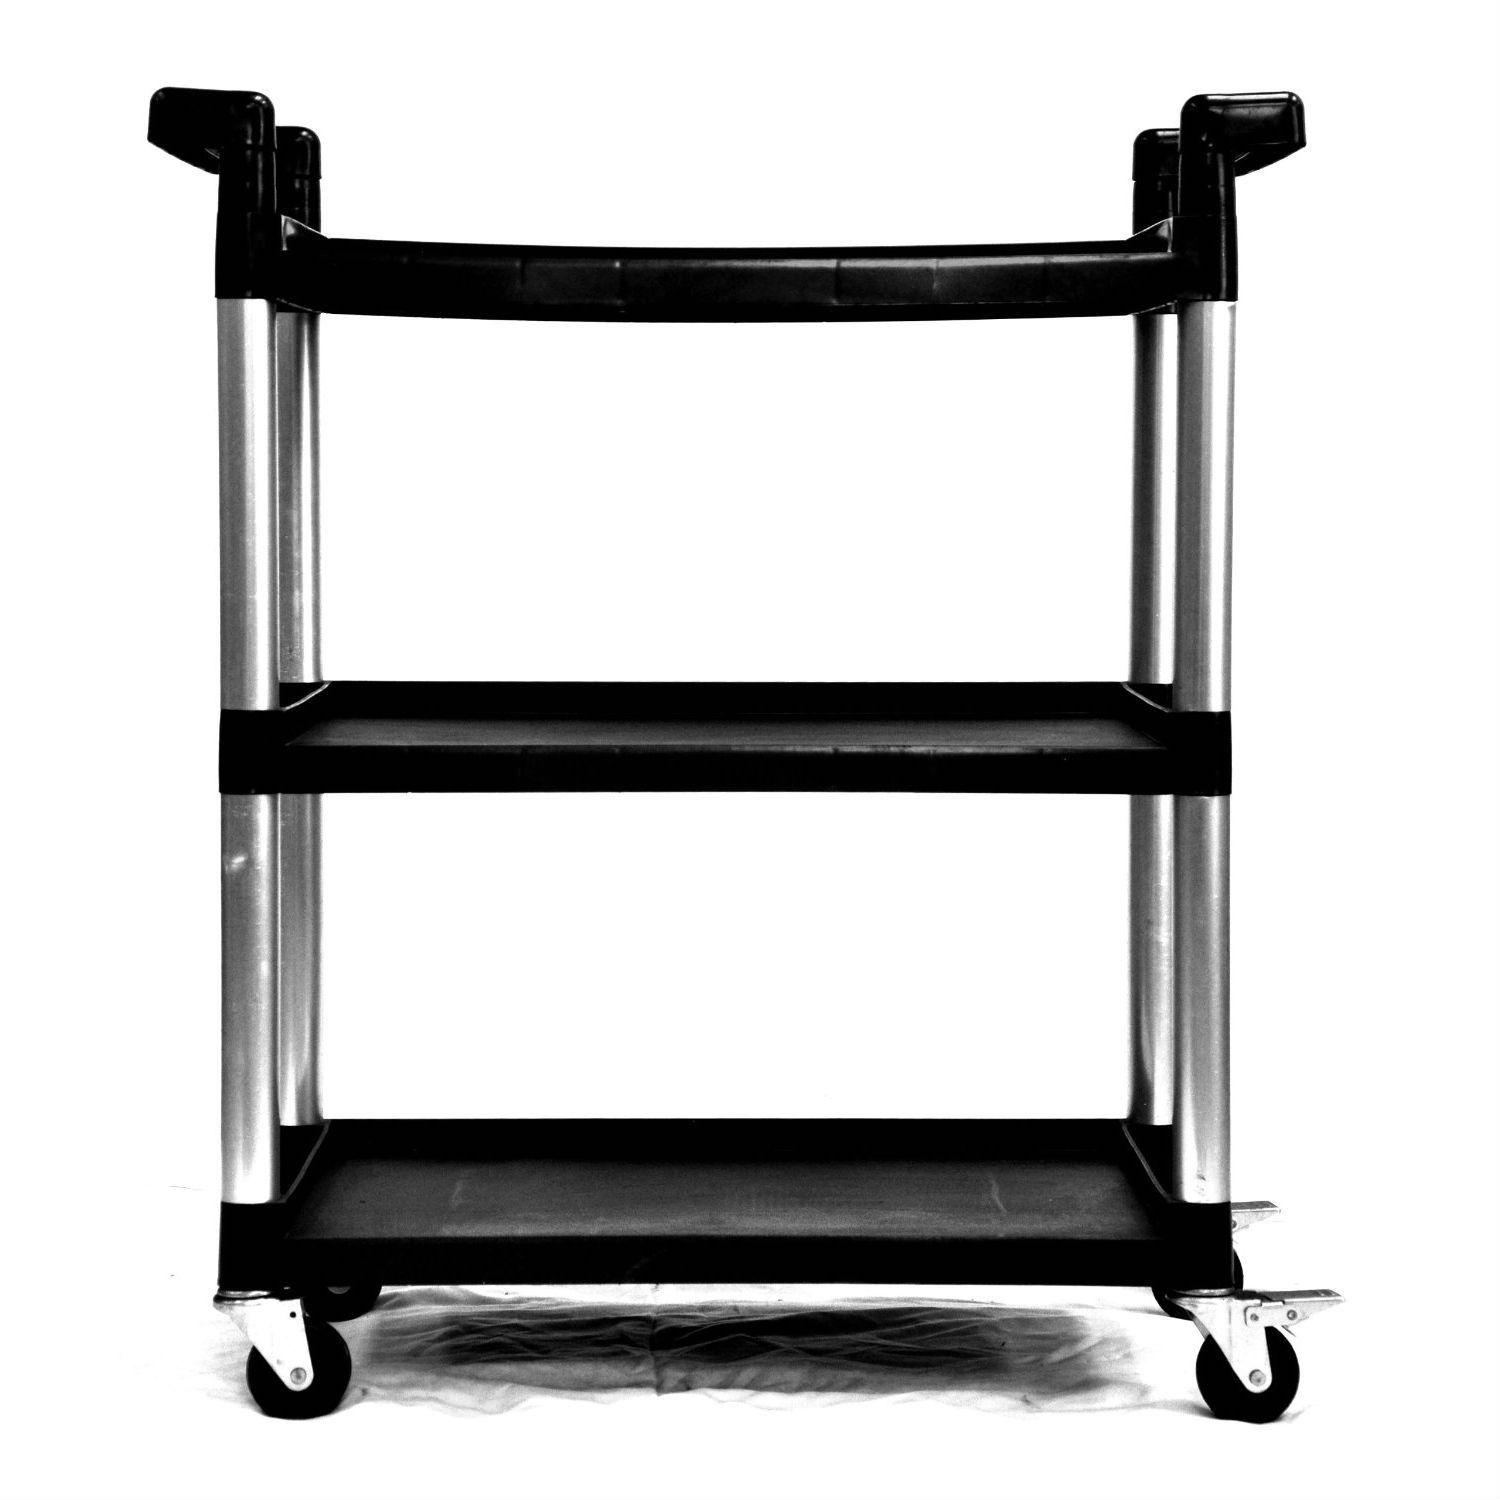 Trinity S Utility Cart Is Perfect For Any Garage Warehouse Office Or Kitchen With Its High Injection Molded Pp And Lightweight Aluminum Legs This